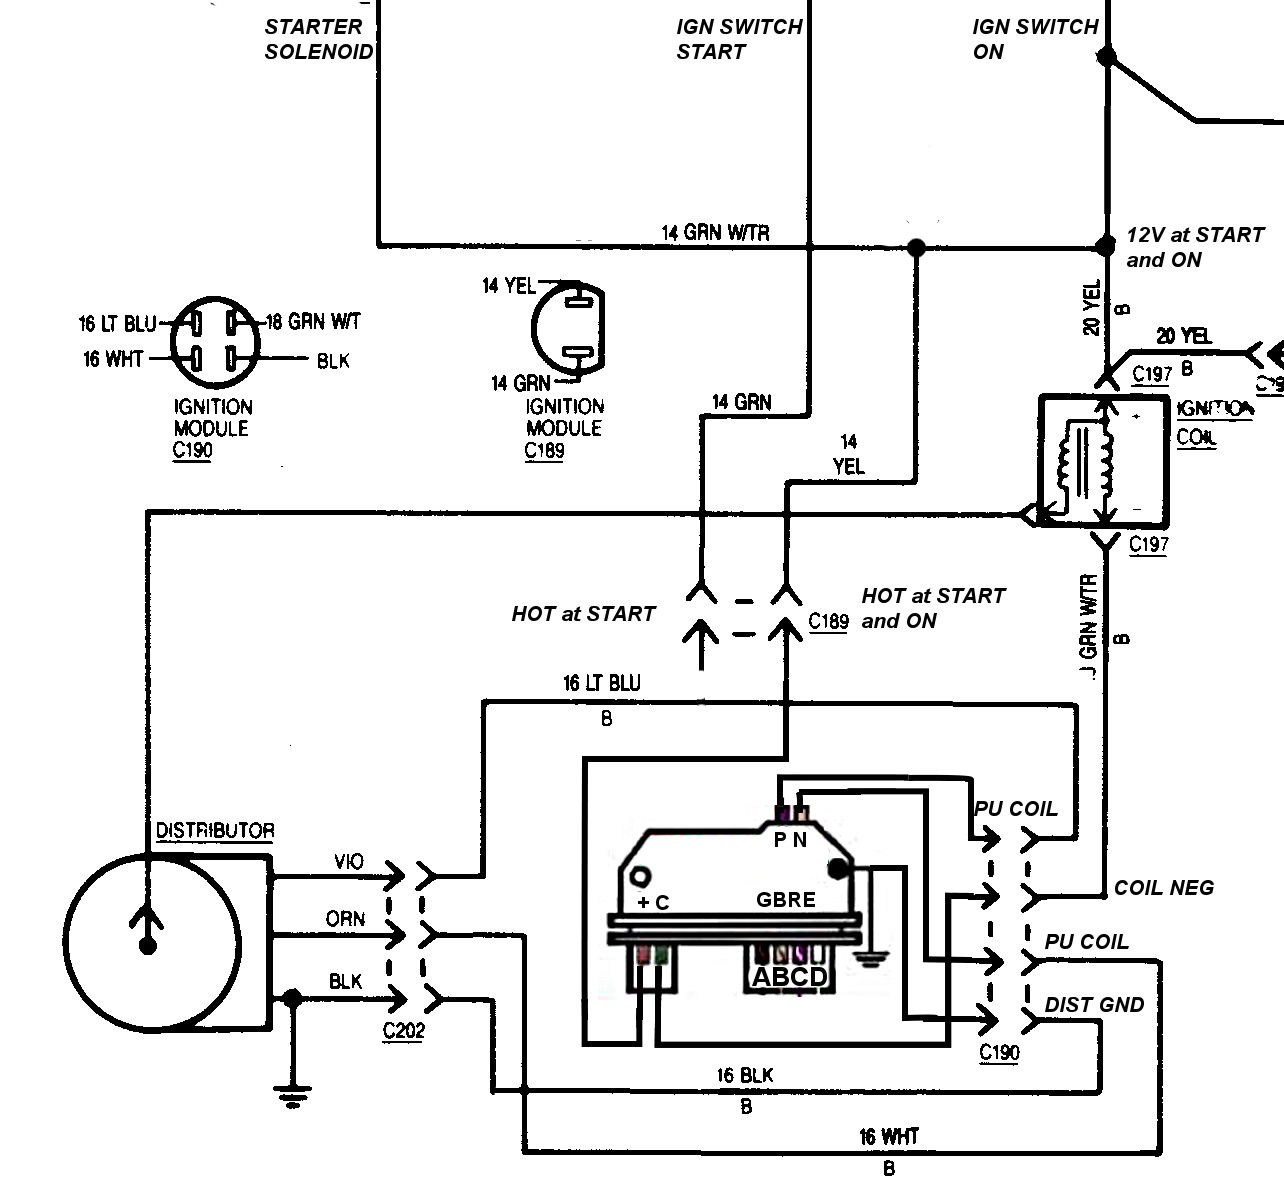 Gm Tbi Ignition Wiring on ford ignition module wiring diagram